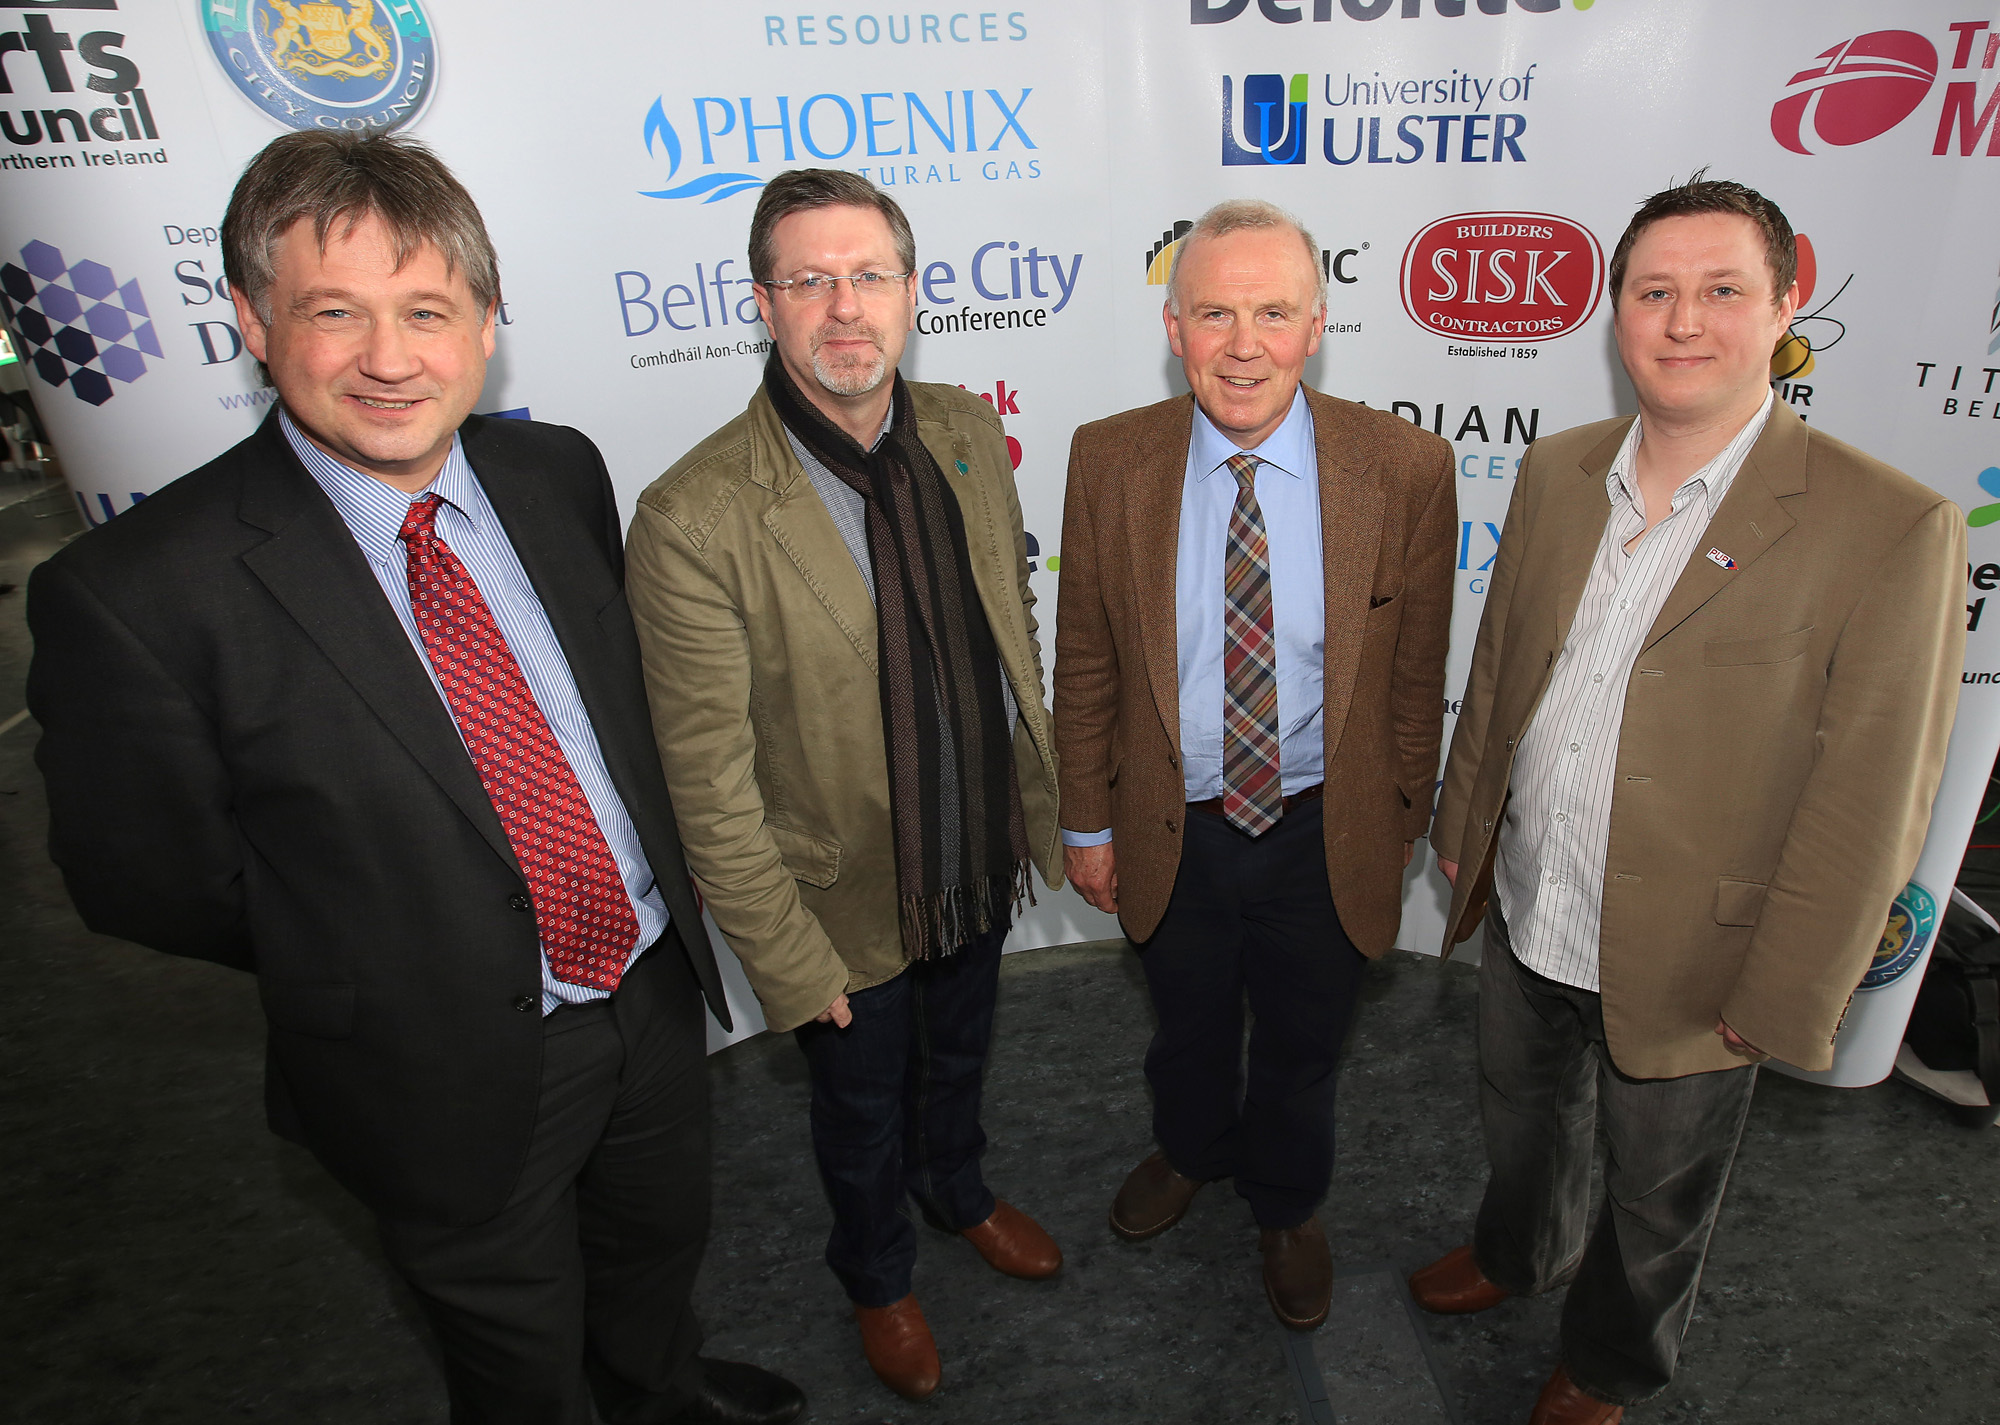 Belfast MET E3, One City Conference 'Lifting the City' . pictured: Basil McCrea MLA, Jim McVeigh (Sinn Fein councillor), John Kyle (PUP) and William Ennis (PUP) 95JC13